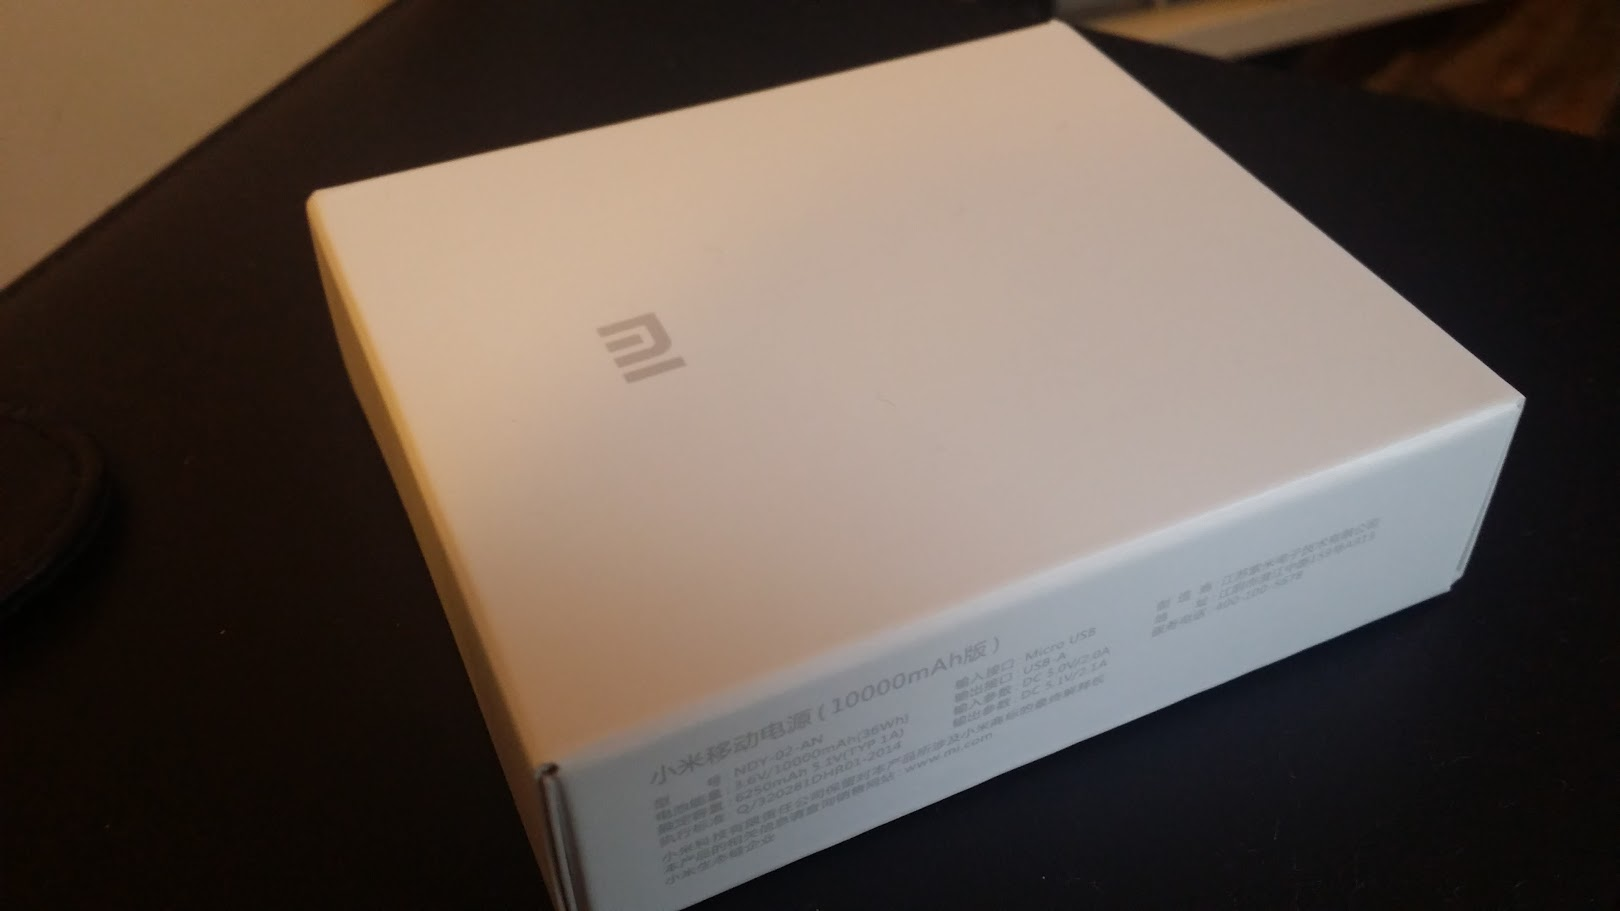 Xiaomi 10000mah Power Bank Review Pocket Sized Powerbank As Expected Does A Great Job With The Packaging